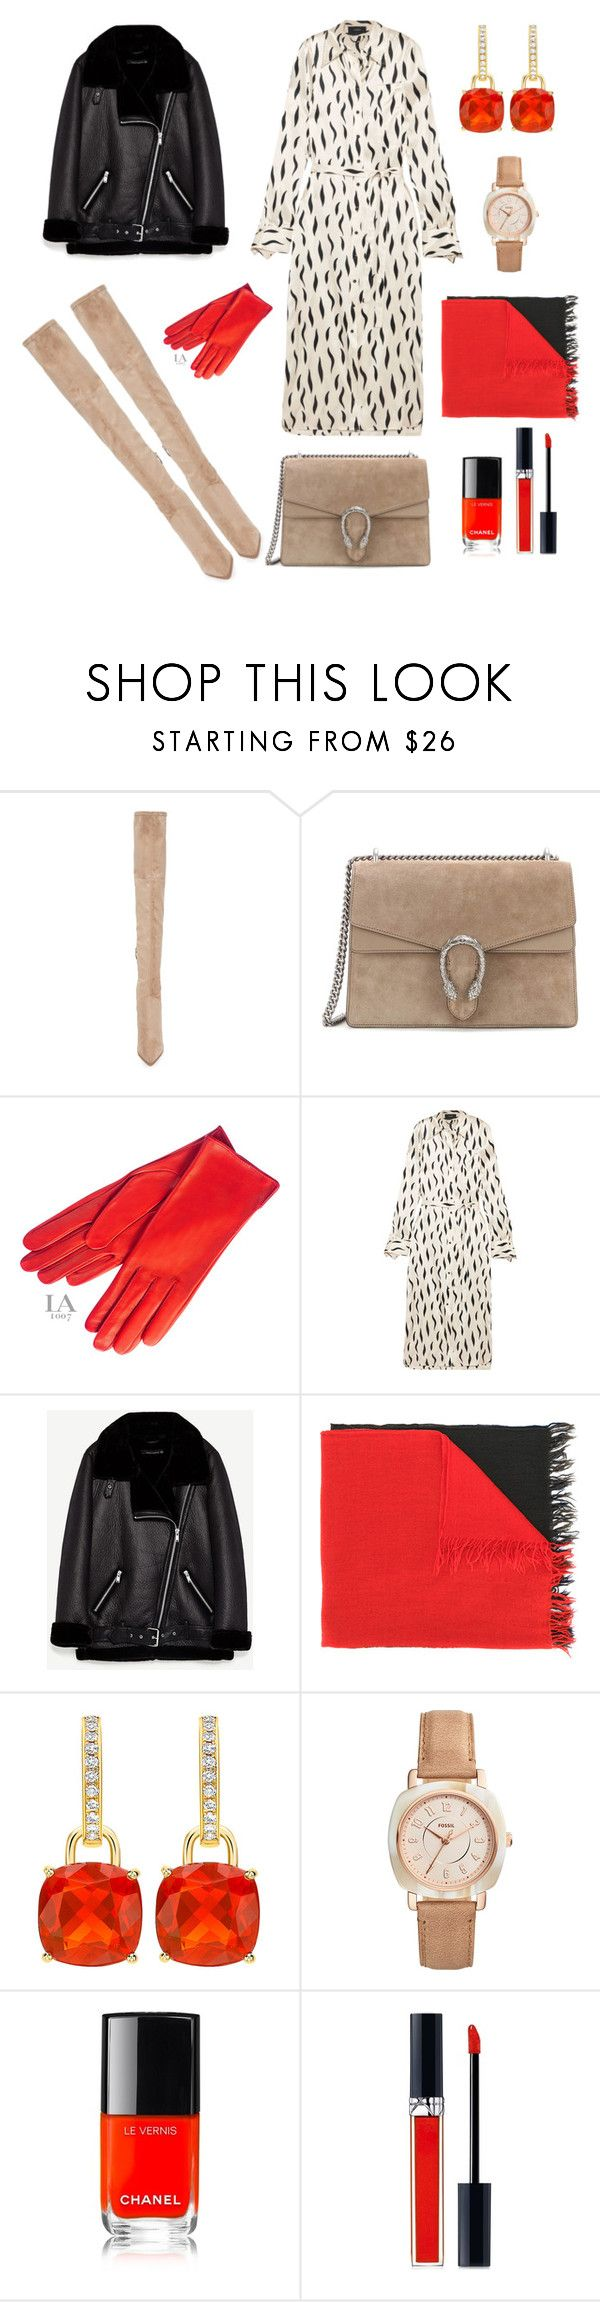 """Untitled #678"" by mary-en ❤ liked on Polyvore featuring Kendall + Kylie, Gucci, Joseph, Y's by Yohji Yamamoto, FOSSIL, Chanel, Christian Dior, colorful, fallfashion and fall2017"